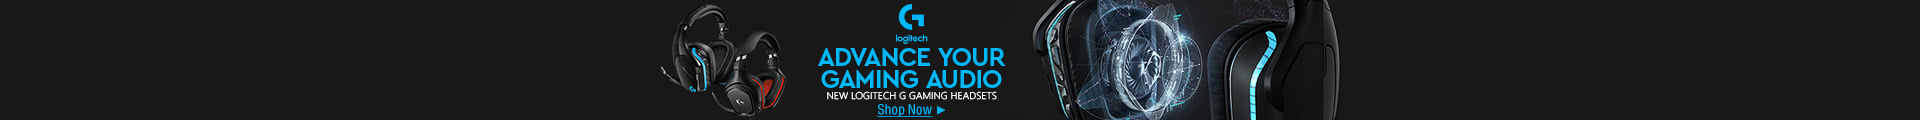 Advance Your Gaming Audio